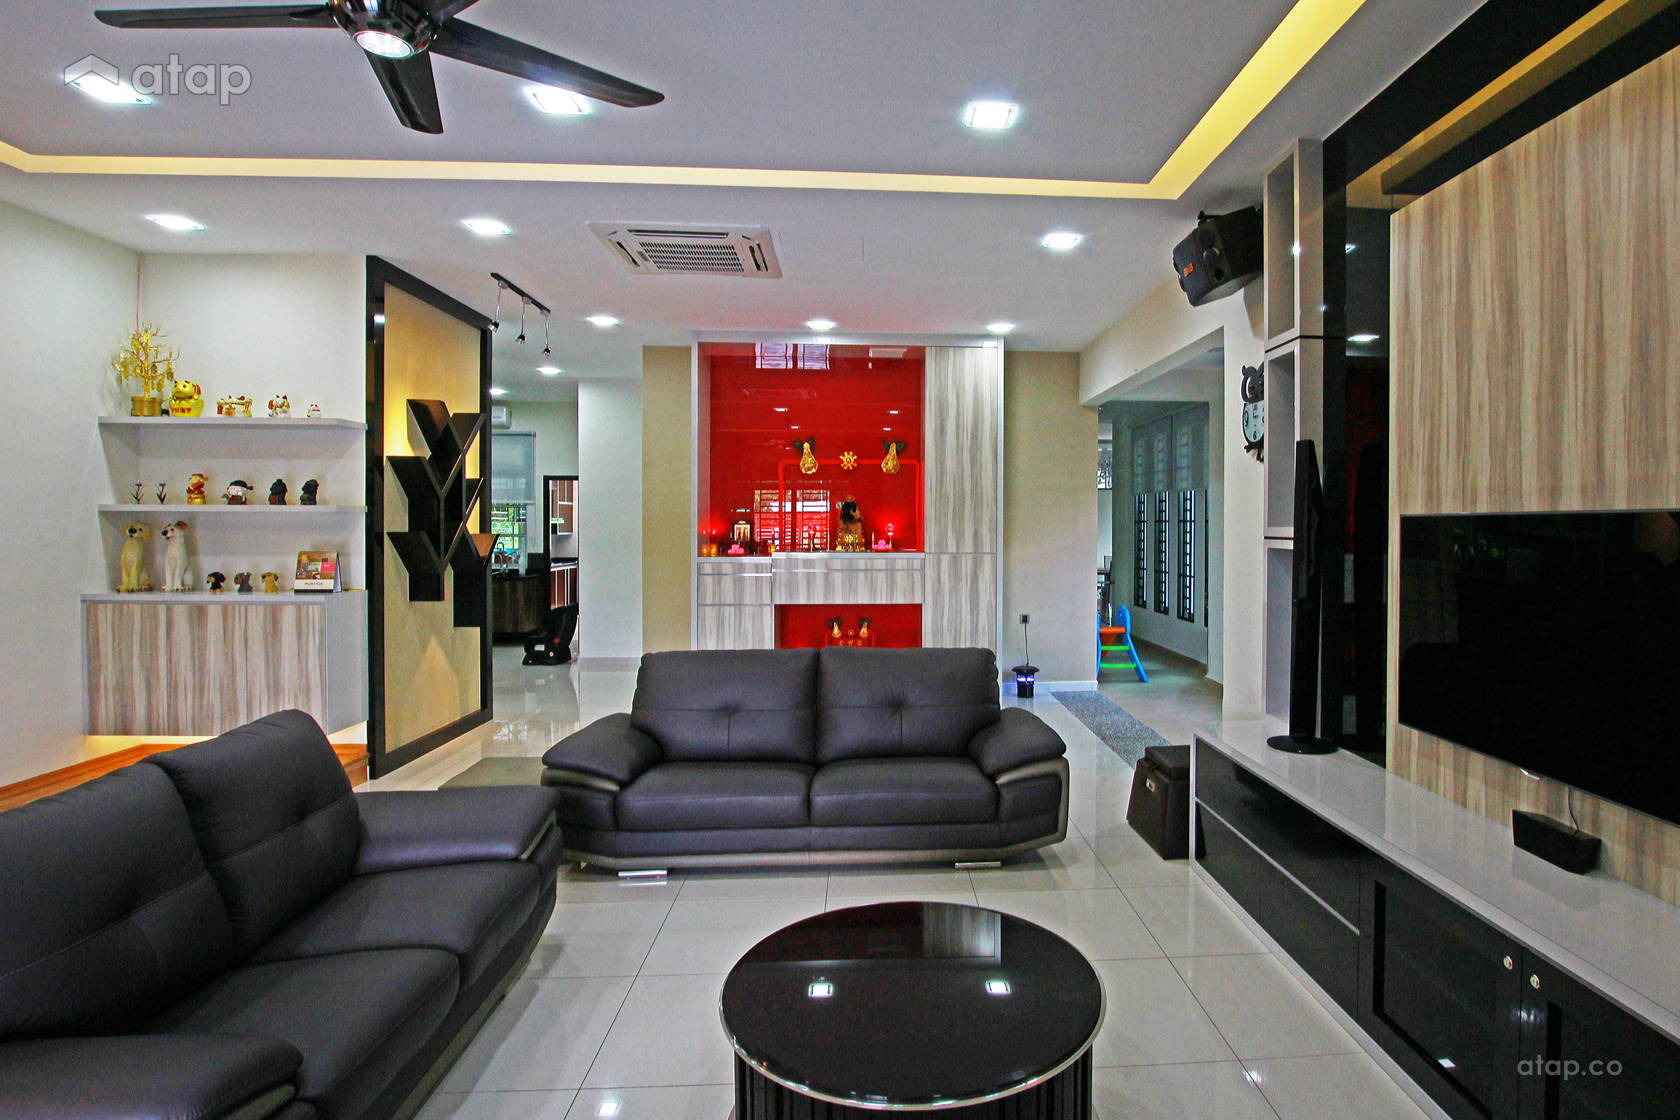 Semi Detached House Type Locate At Taman Putri Kulai Interior Design Renovation Ideas Photos And Price In Malaysia Atap Co